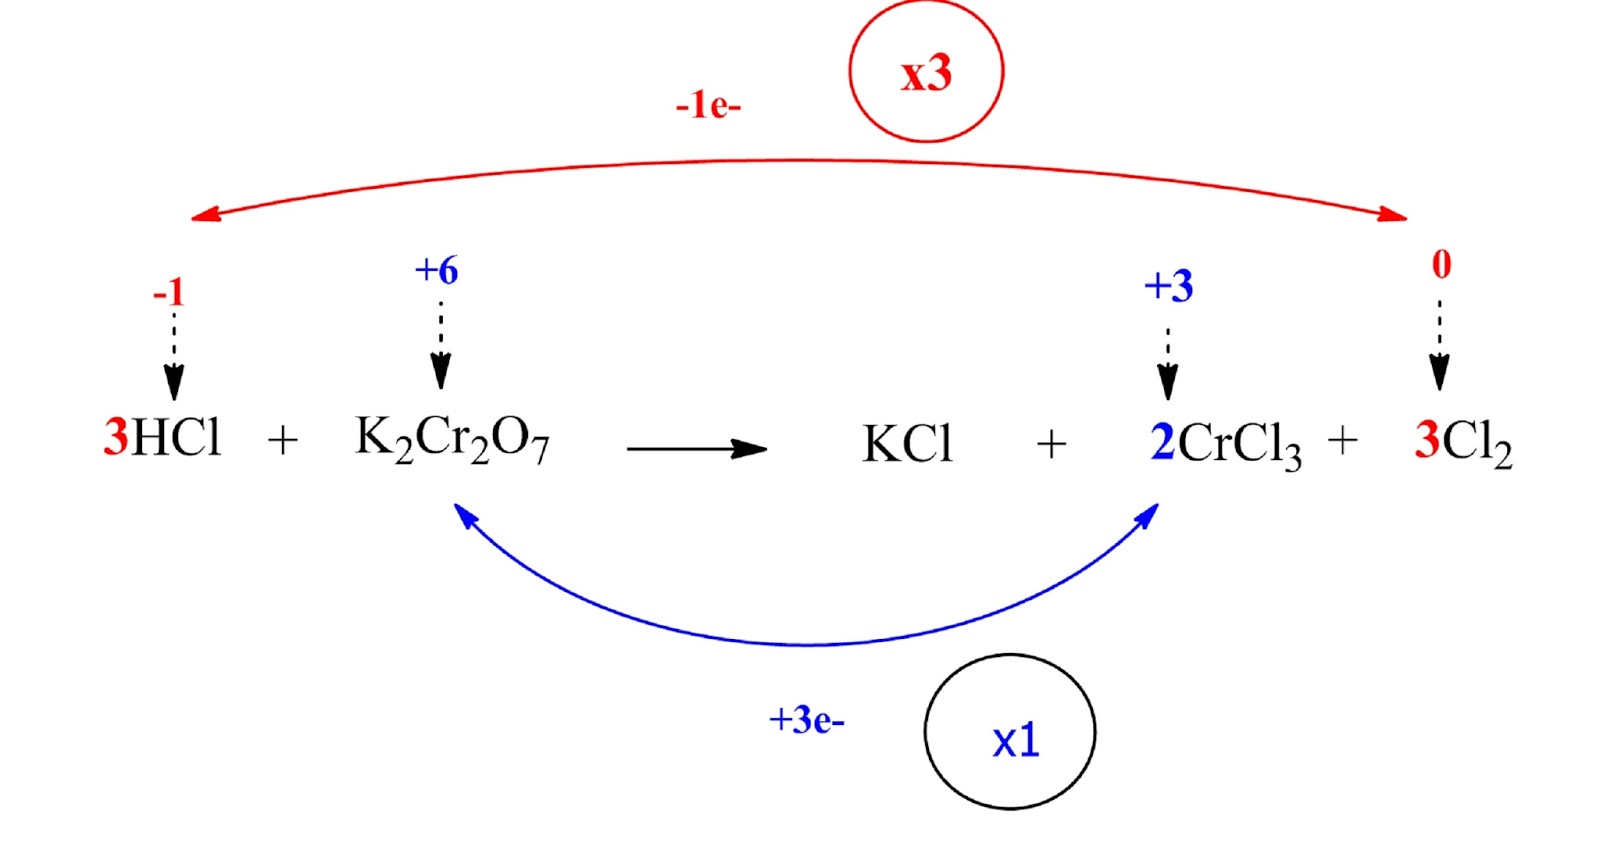 unbalanced reaction between HCl and K2Cr2O7 including oxidation number difference and coefficients